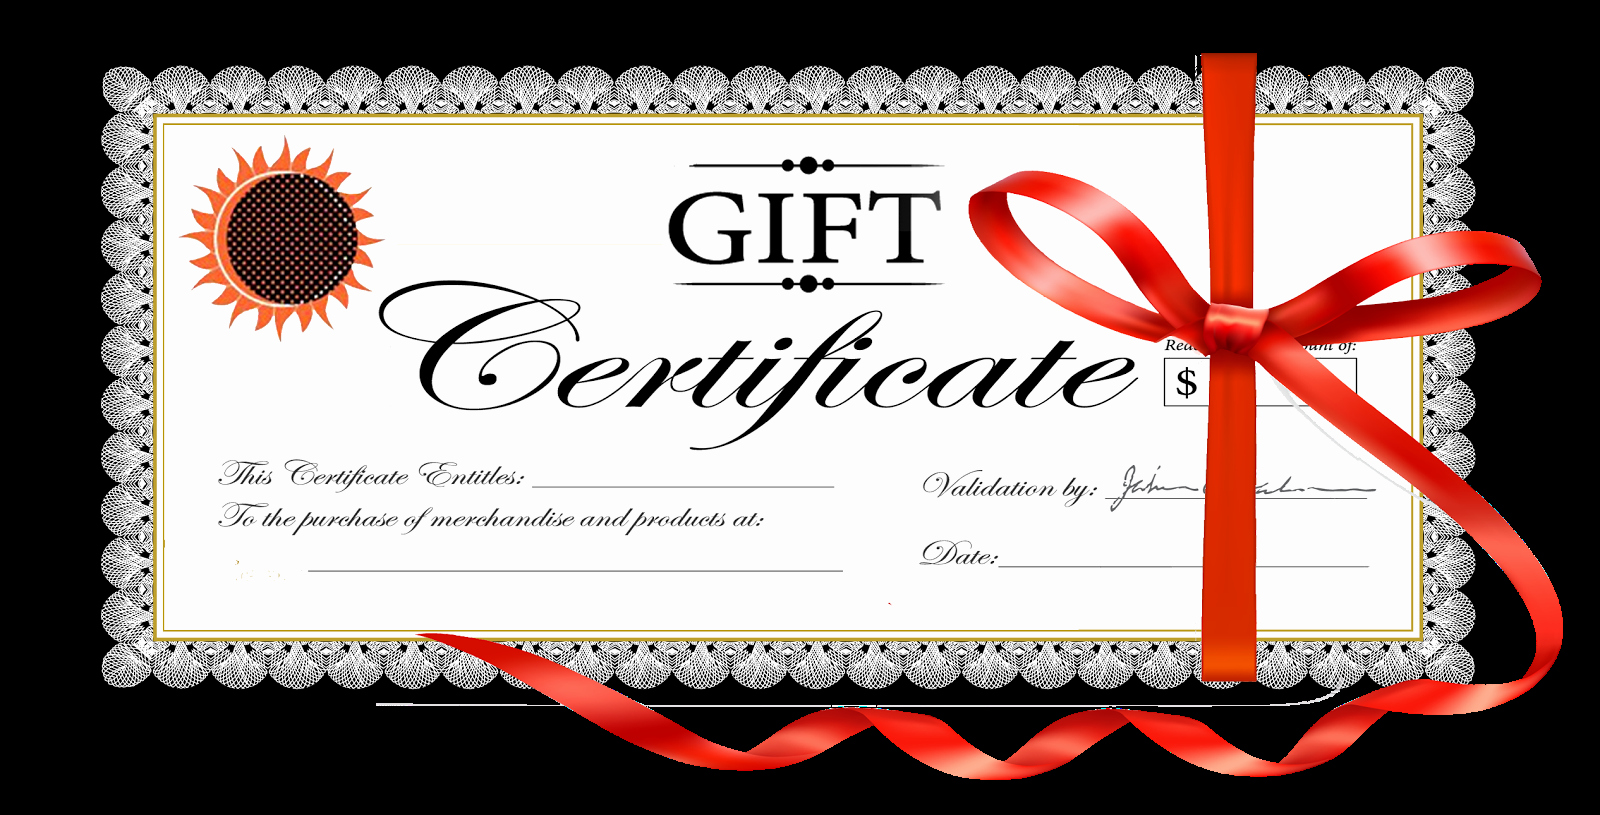 Make A Gift Certificate Free Fresh 18 Gift Certificate Templates Excel Pdf formats